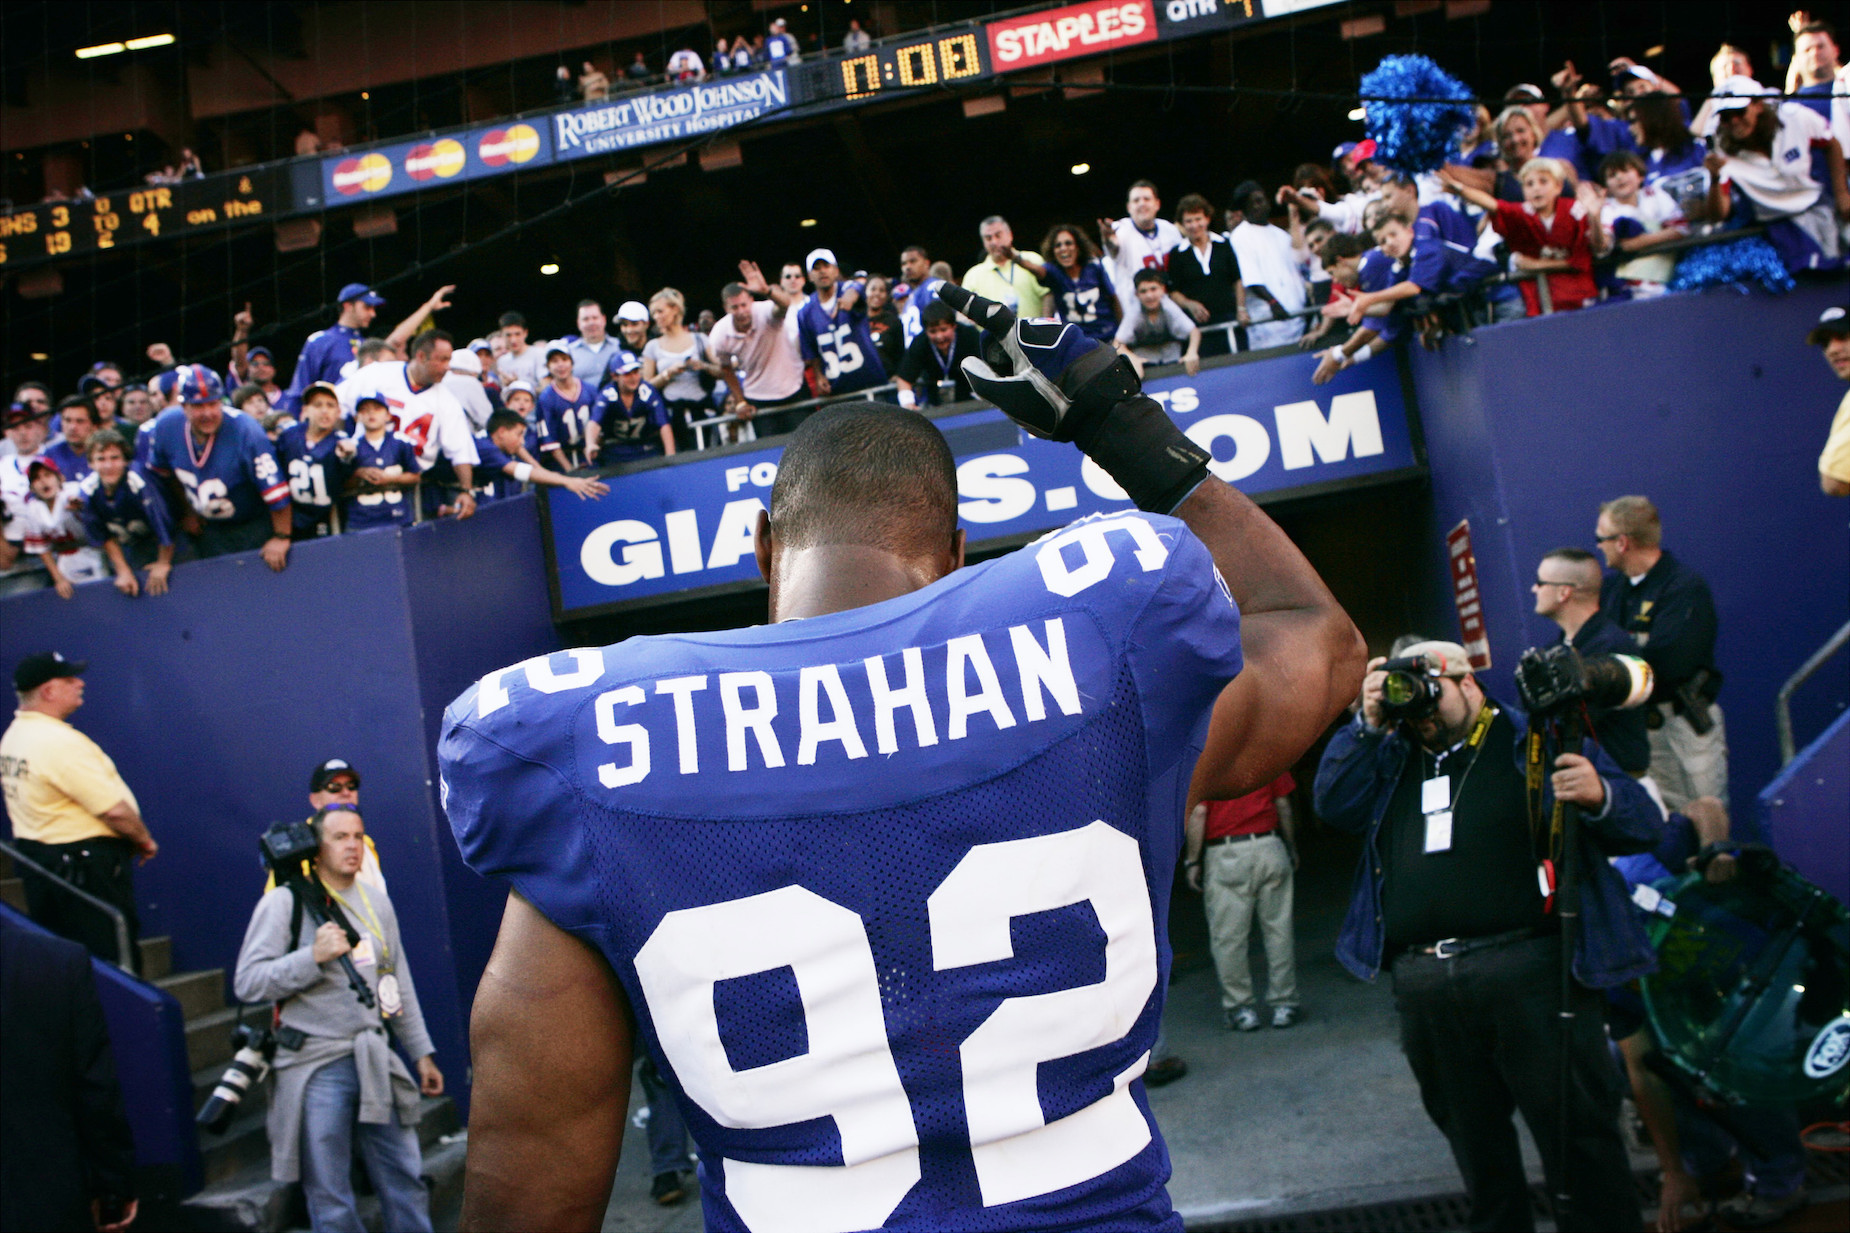 Michael Strahan was teased as a child and channeled that experience into an NFL career.